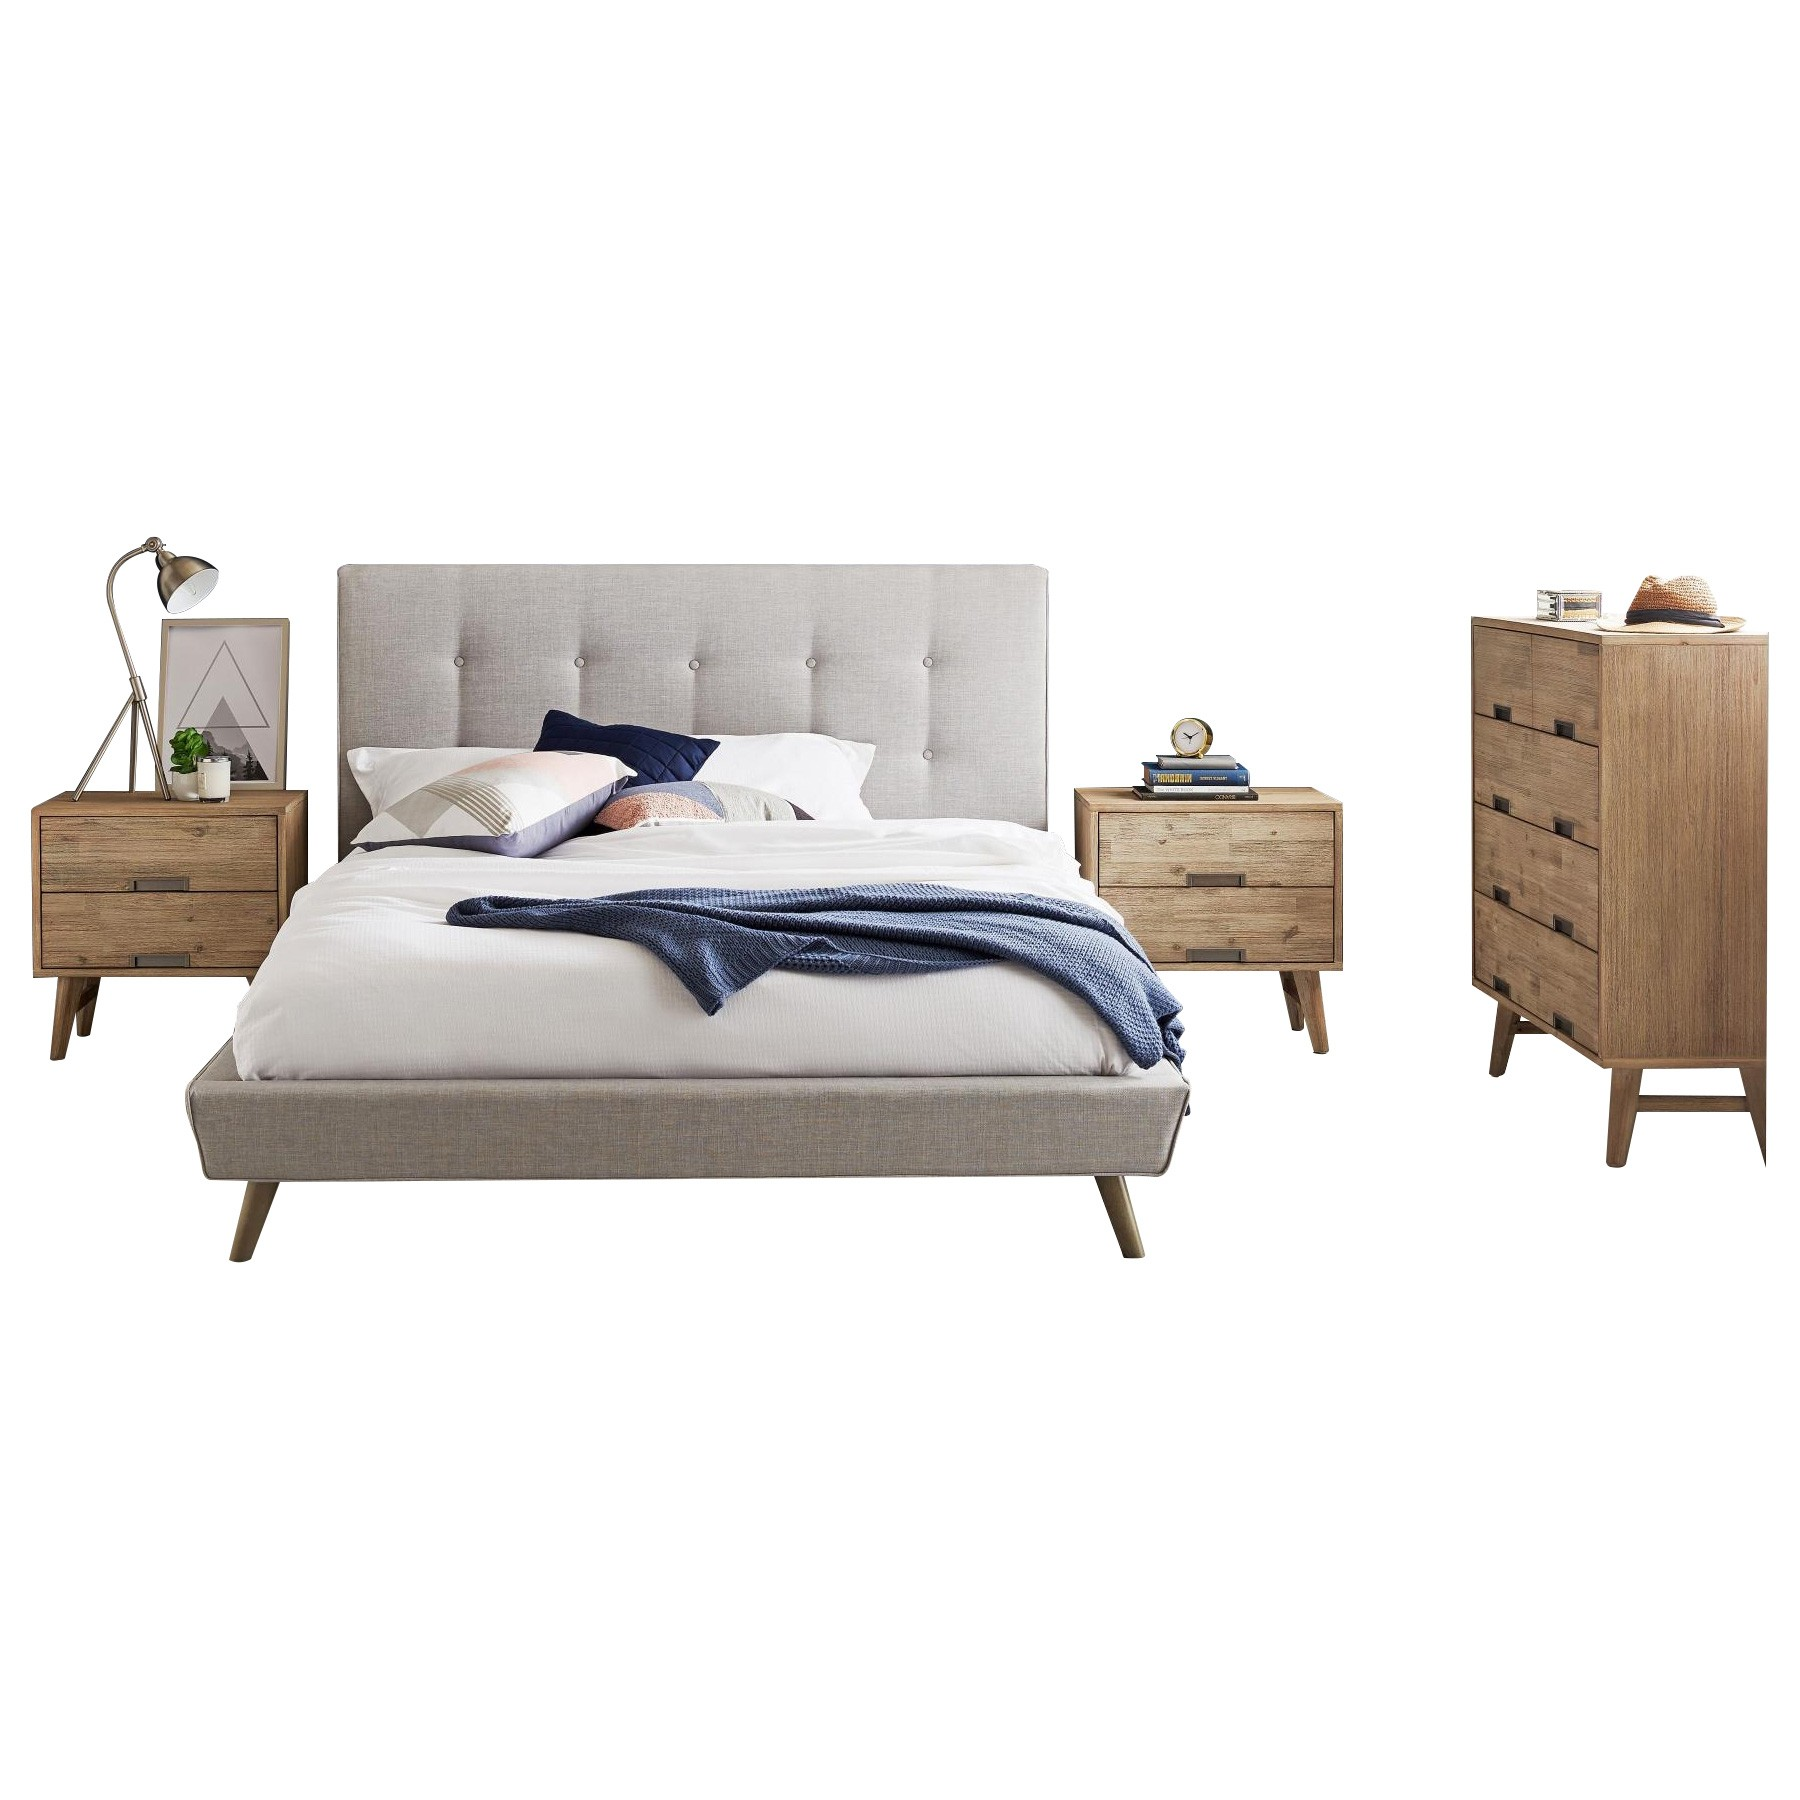 Miya & Telsa 4 Piece Bedroom Tallboy Suite, Queen